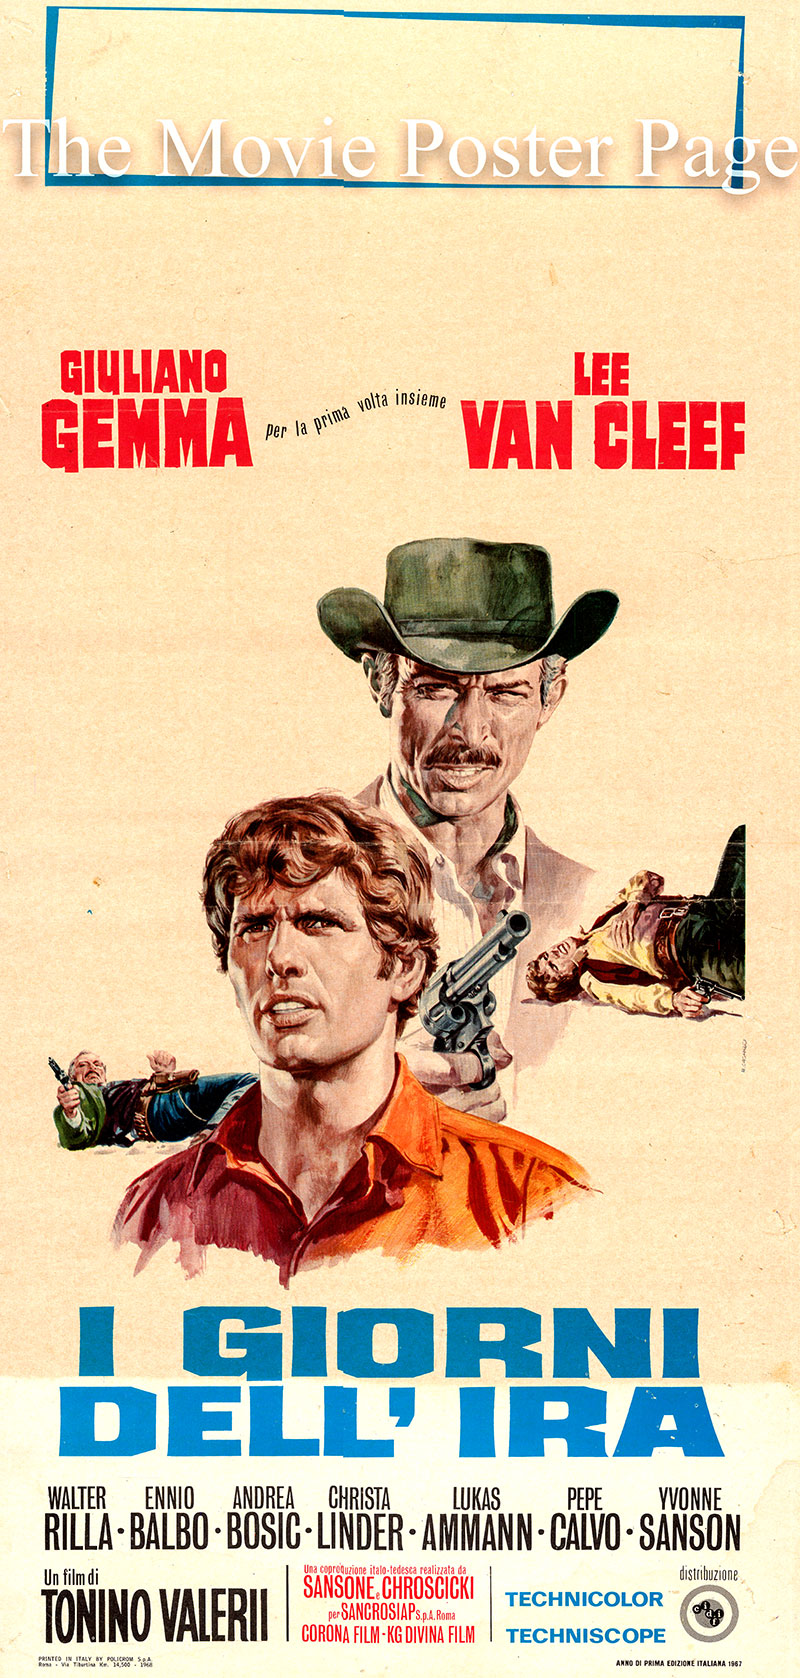 Pictured is an Italian locandina poster for the 1967 Tonino Valerii film A Day of Anger starring Giuliano Gemma as Scott Mary.